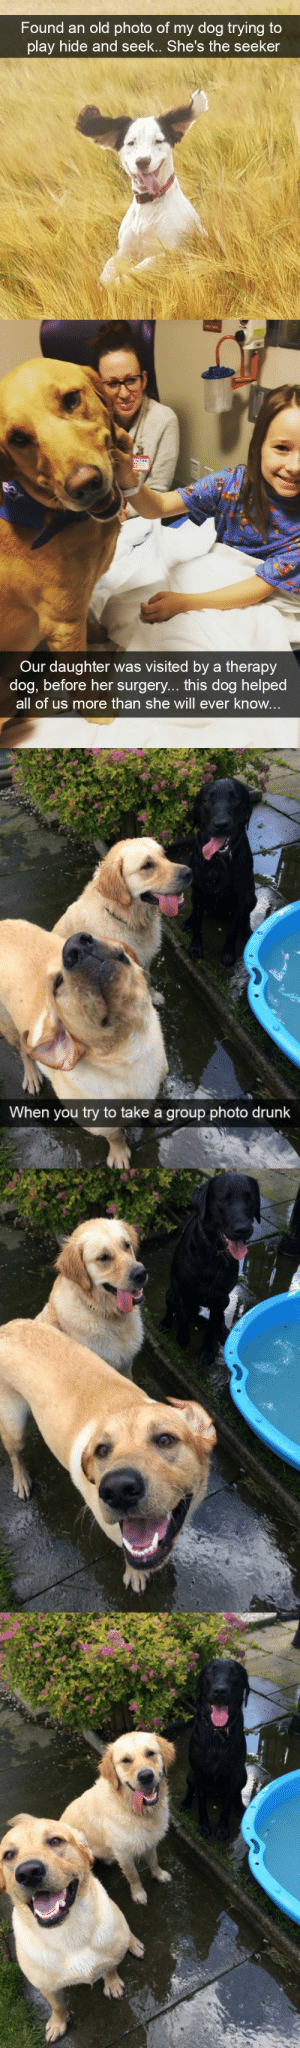 animalsnaps:Dog snaps: Found an old photo of mv doa trving tO  play hide and seek.. She's the seeker   Our daughter was visited by a therapy  dog, before her surgery... this dog helped  all of us more than she will ever know   When you try to take a group photo drunk animalsnaps:Dog snaps